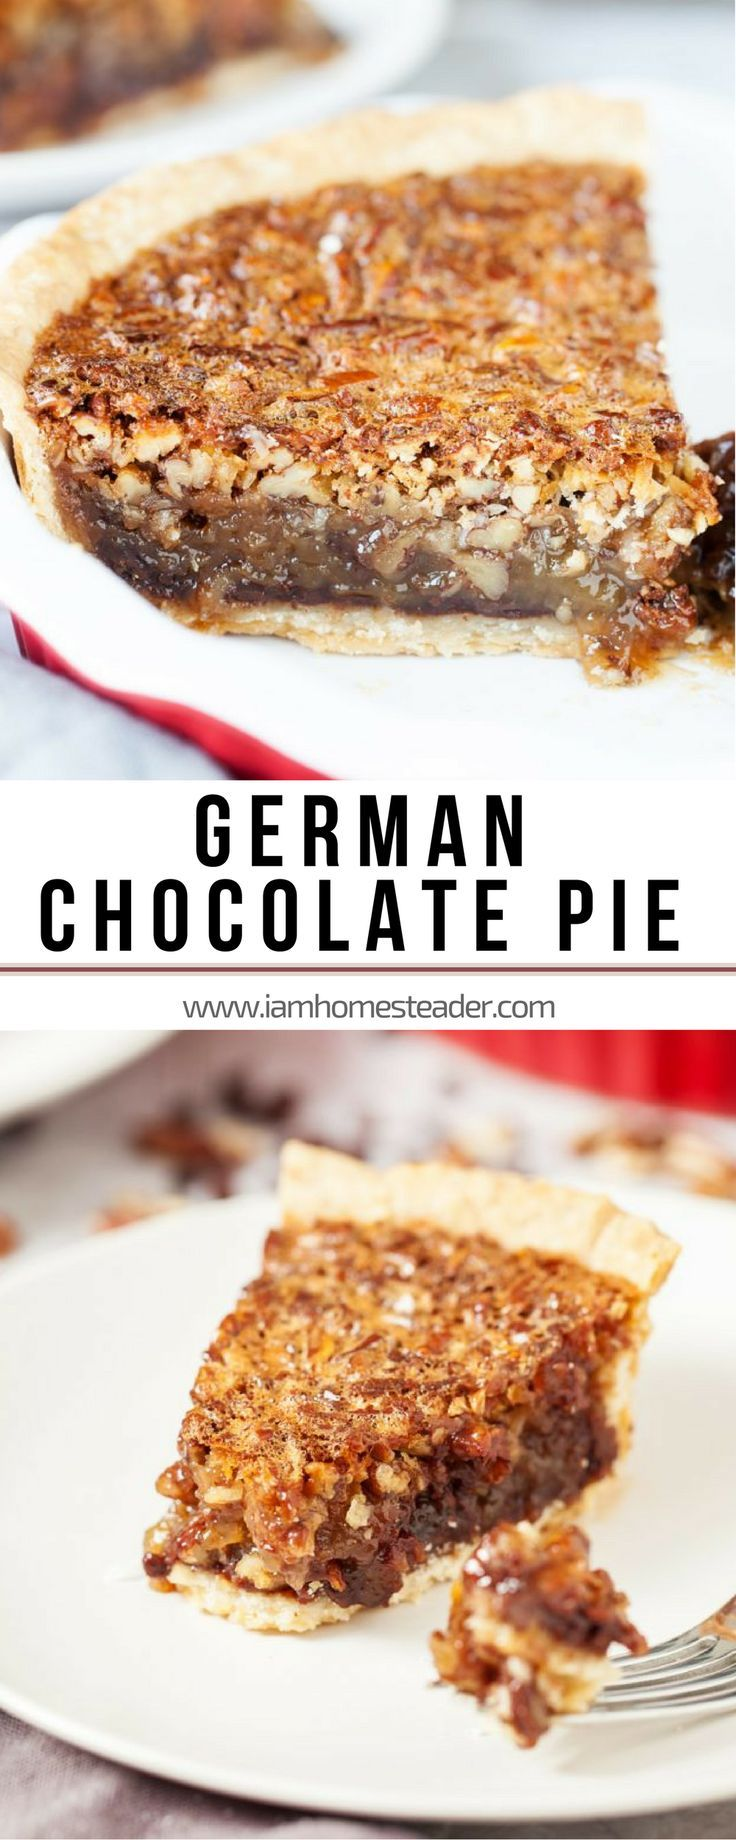 GERMAN CHOCOLATE PIE | A decadent dessert - thick, chewy, and crunchy layer of coconut and pecans atop a  bed of chocolate chips! Perfect if paired on any of your easy dinner recipes! Add this to your collection of Easy Dessert Recipes | Quick and Easy Dinner Recipe for the Family | Easy Homemade Food Recipes for Dinner Check us out @iamhomesteader for more healthy homemade cooking and easy homesteading recipes you can do at home.  #Homestead #homesteading